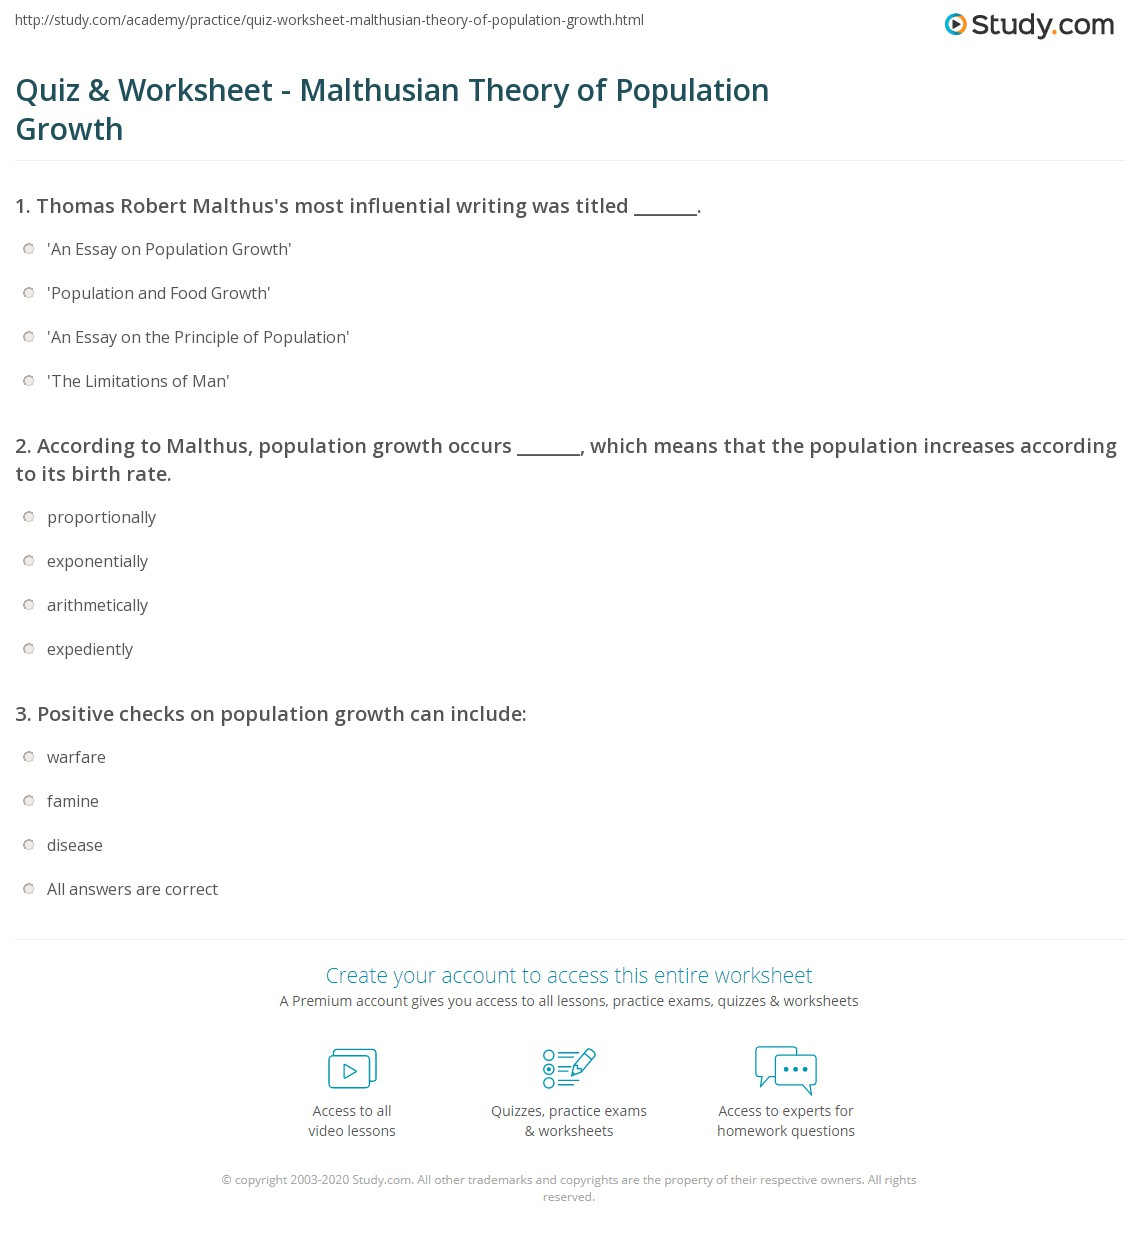 quiz worksheet malthusian theory of population growth com print malthusian theory of population growth definition overview worksheet